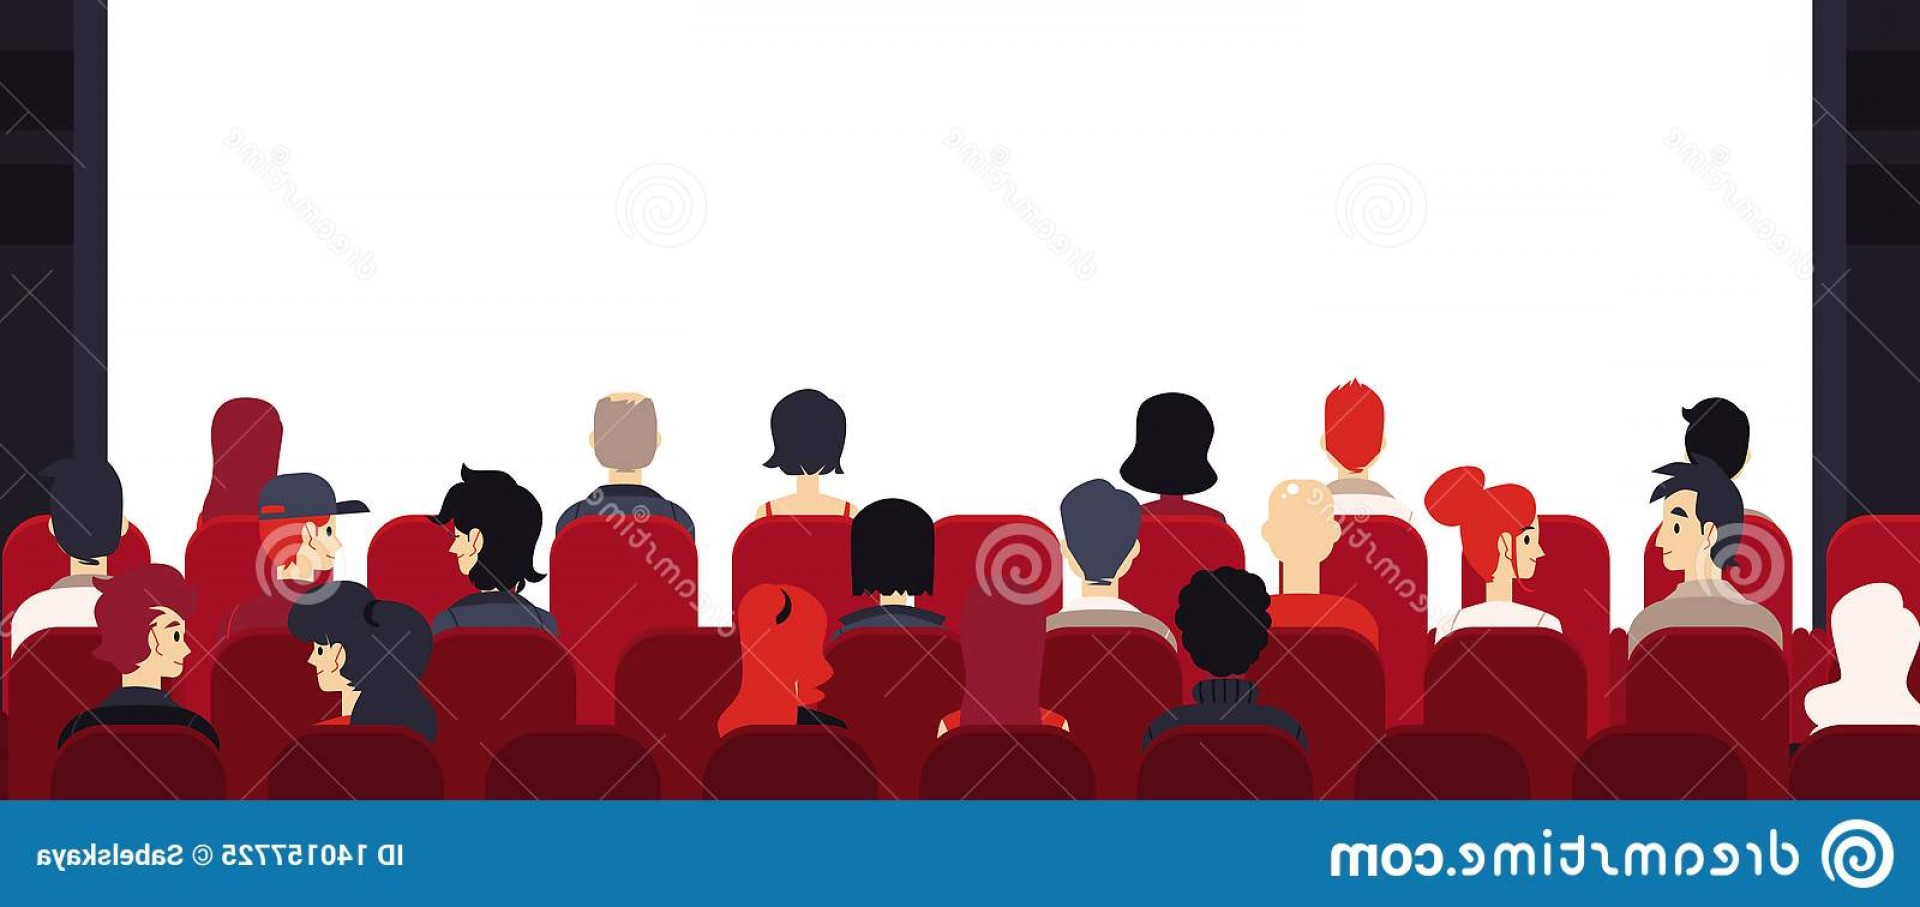 Vector Stage Audience: Vector Big Audience People Chairs Empty Stage Sitting Corporate Training Seminar Lecture Presentation Annual Report Image